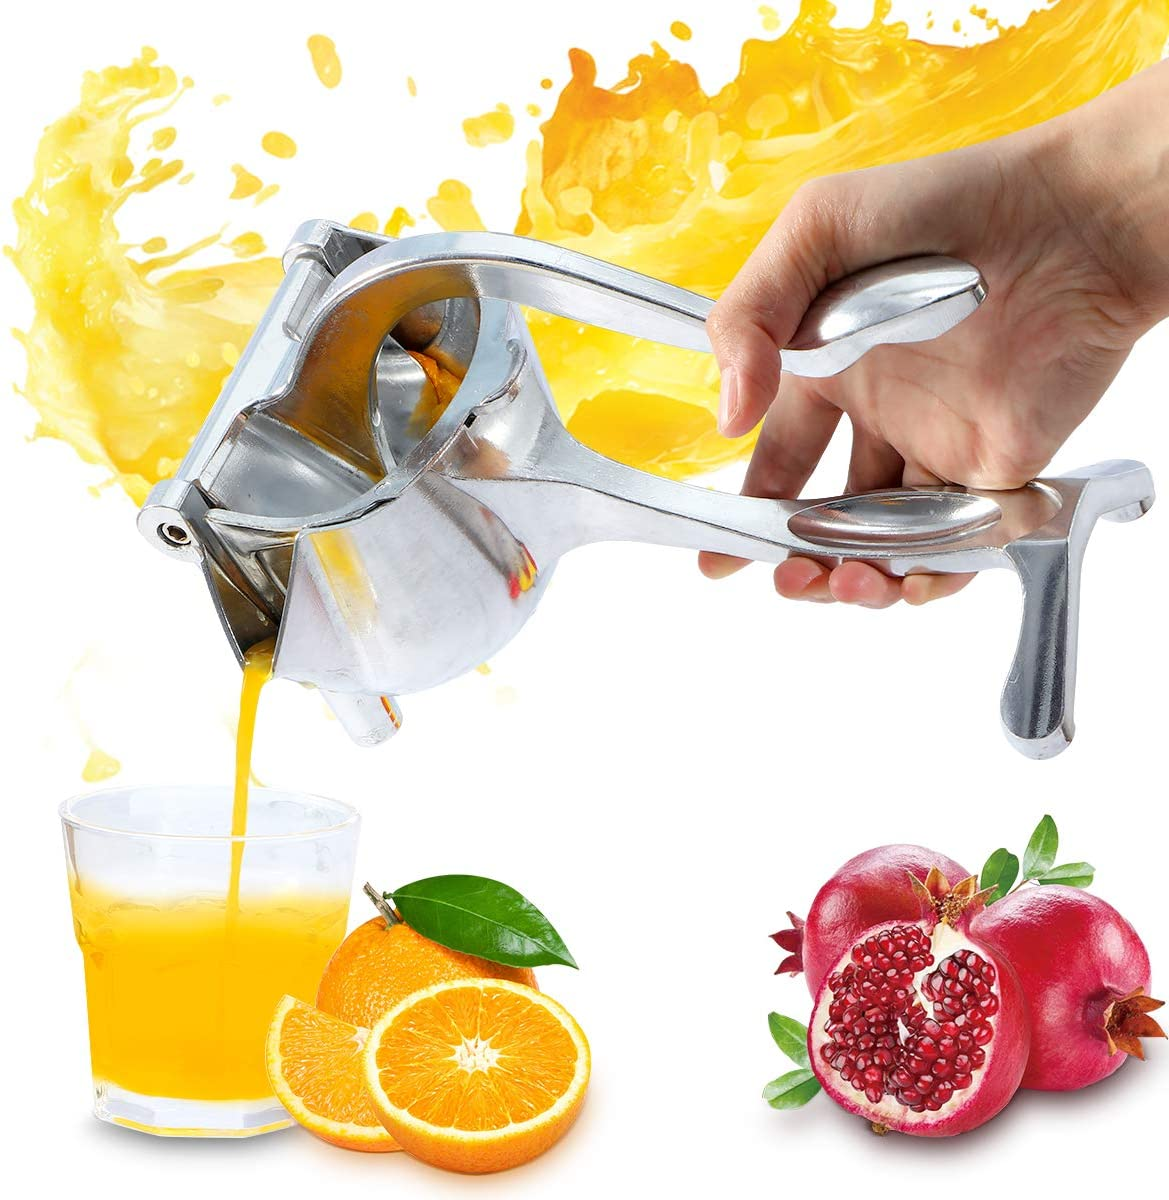 Manual Fruit Juicer Citrus Lemon Squeezer Orange Lime Hand Juicer, Heavy Duty Aluminum Metal, High Juice Yield Fruit Press Squeezer for Pomegranate Watermelon Strawberry Grapefruit,with Filter Bag